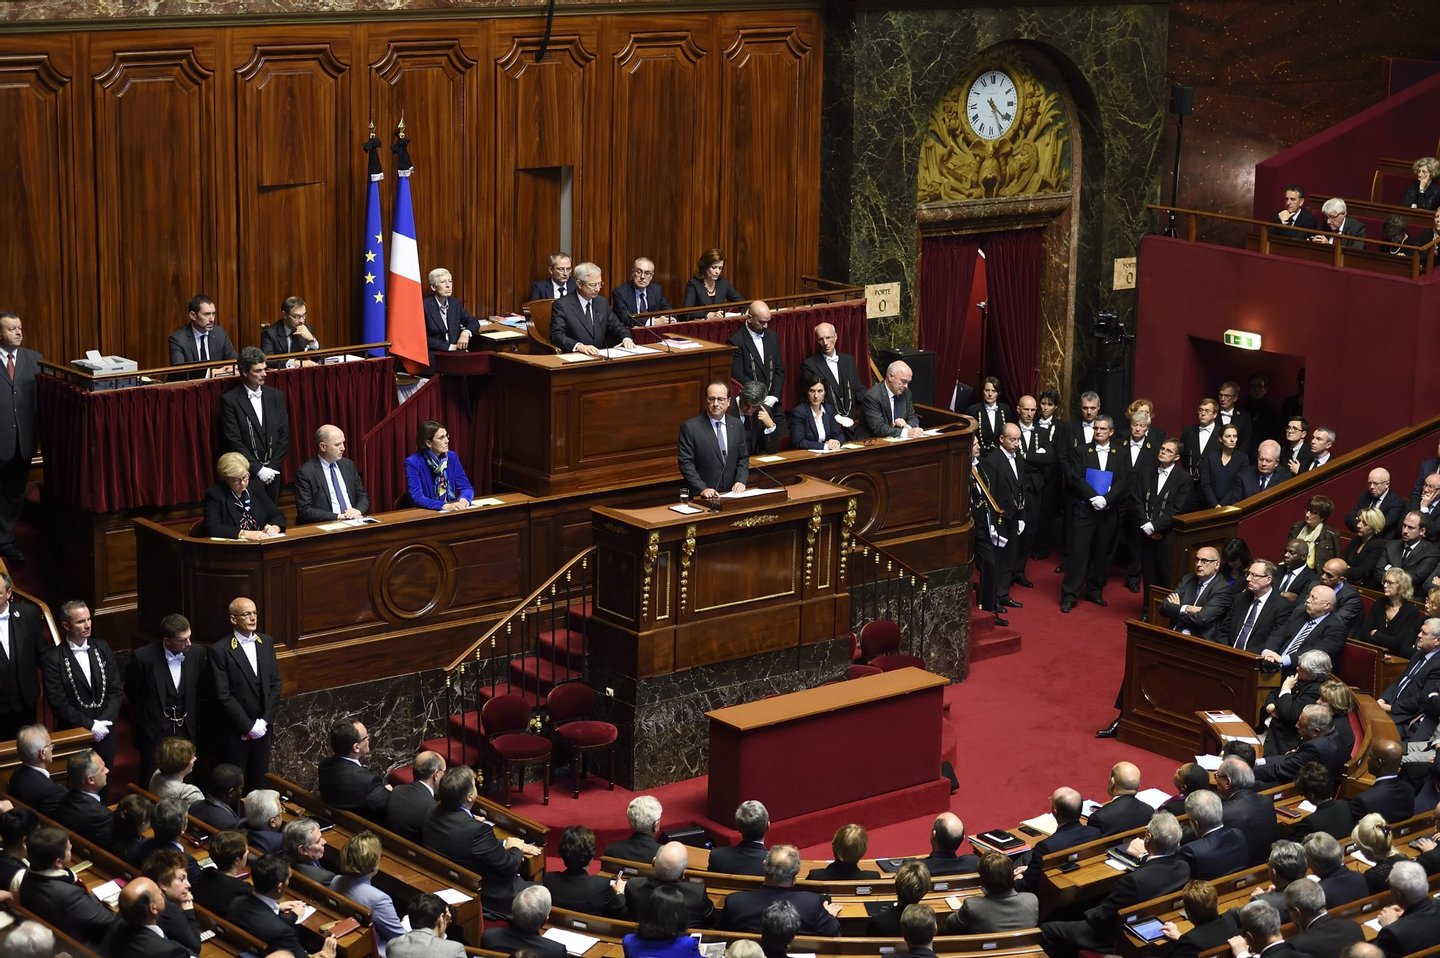 French President Francois Hollande delivers a speech to members of Parliament during an exceptional joint gathering of Parliament in Versailles on November 16, 2015, three days after 129 people were killed in the worst terrorist attack in France's history. AFP PHOTO / POOL / ERIC FEFERBERG (Photo credit should read ERIC FEFERBERG/AFP/Getty Images)